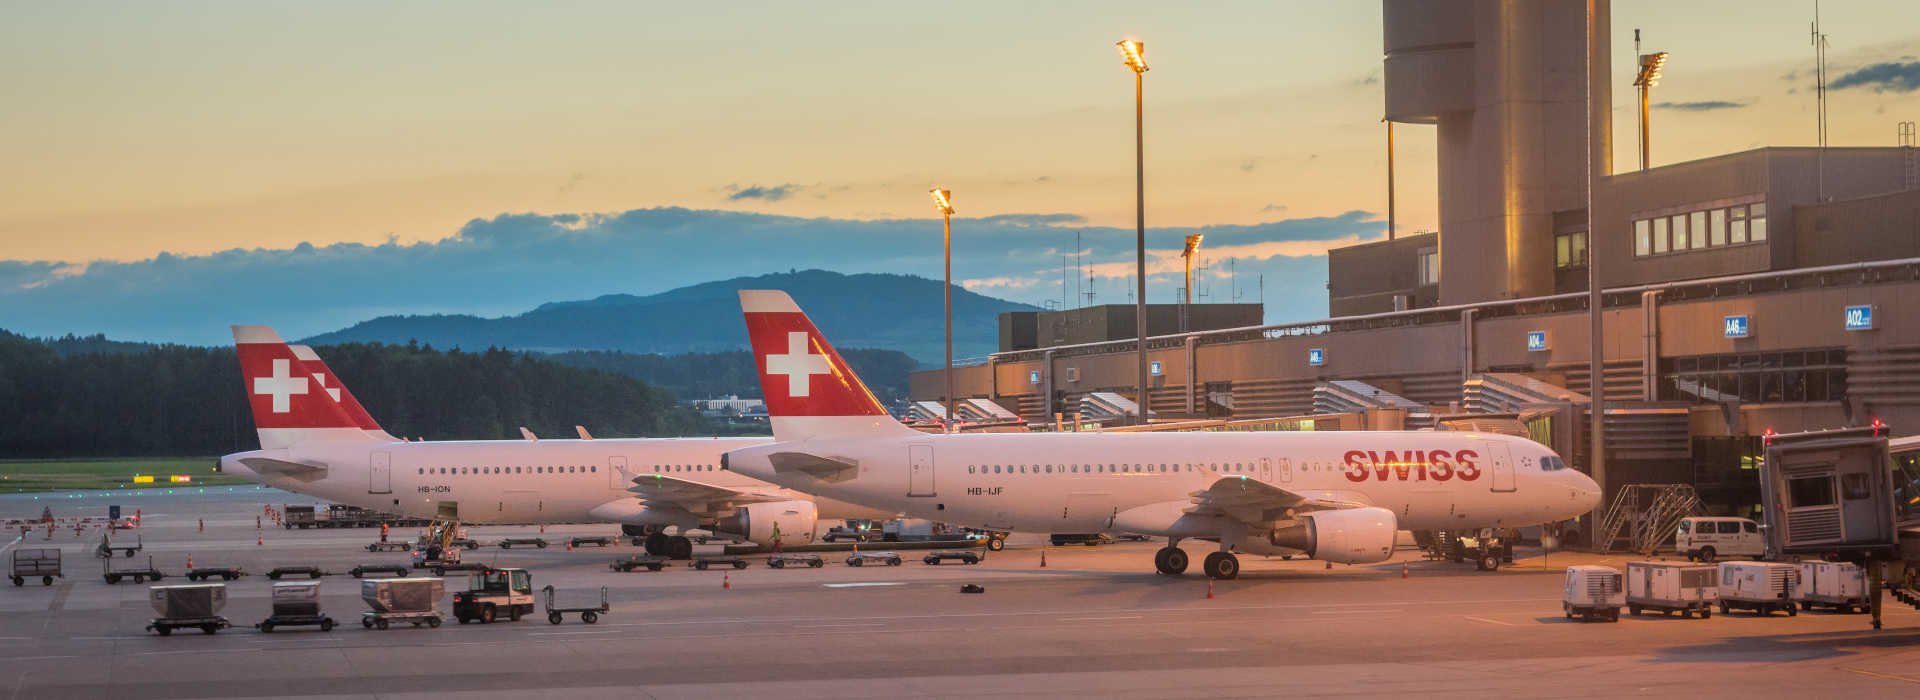 Zurich, Switzerland - July 6, 2016: Kloten airport in Zurich featuring control tower and Swiss International Air Lines aircrafts parked at the gates. The image was taken just after sunset.